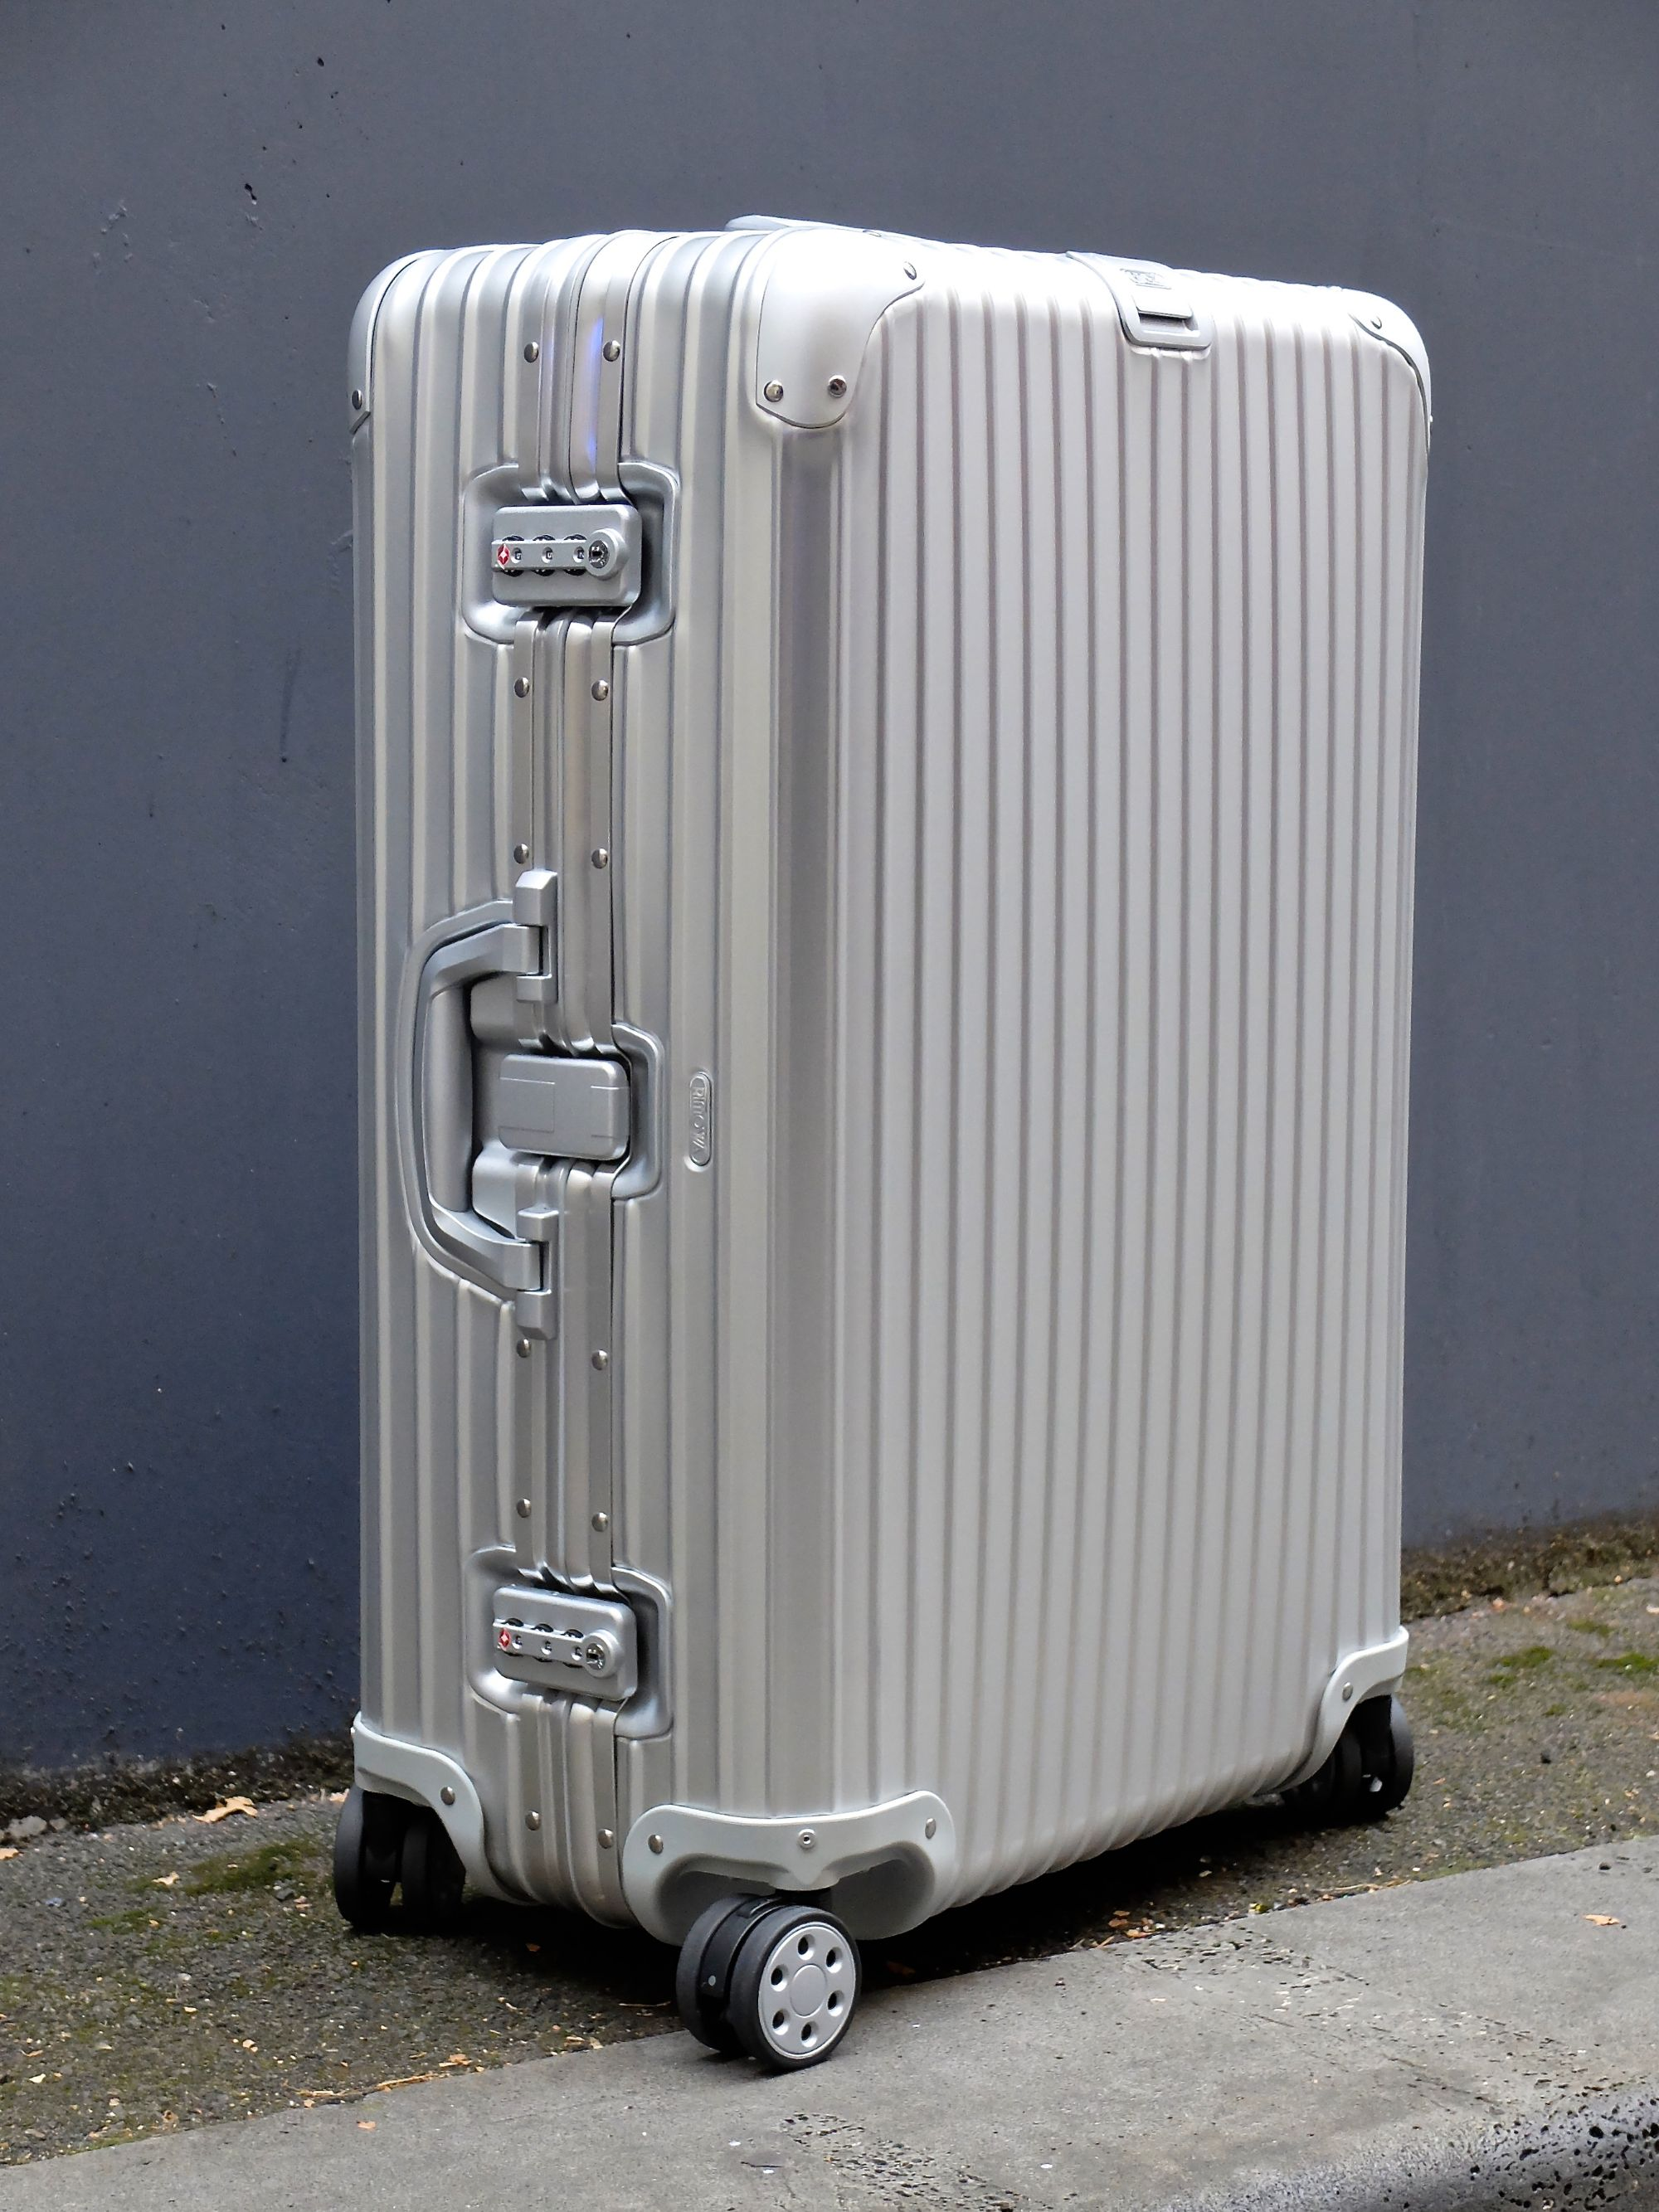 Rimowa Lightweight Luggage | Luggage And Suitcases